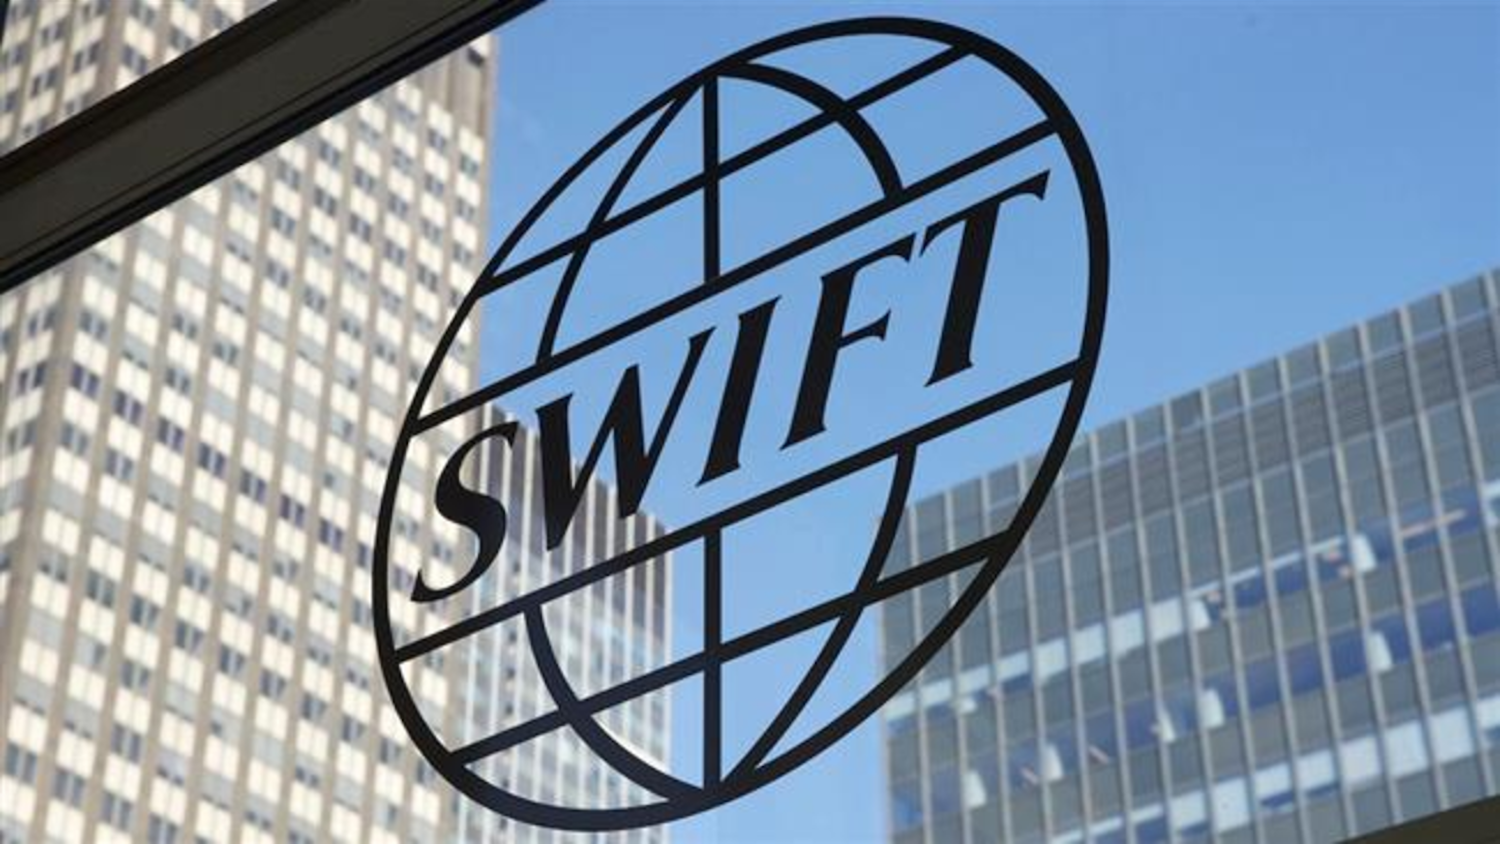 http://www.coindesk.com/swift-reveals-its-future-global-payment-tech-blockchain-not-included/